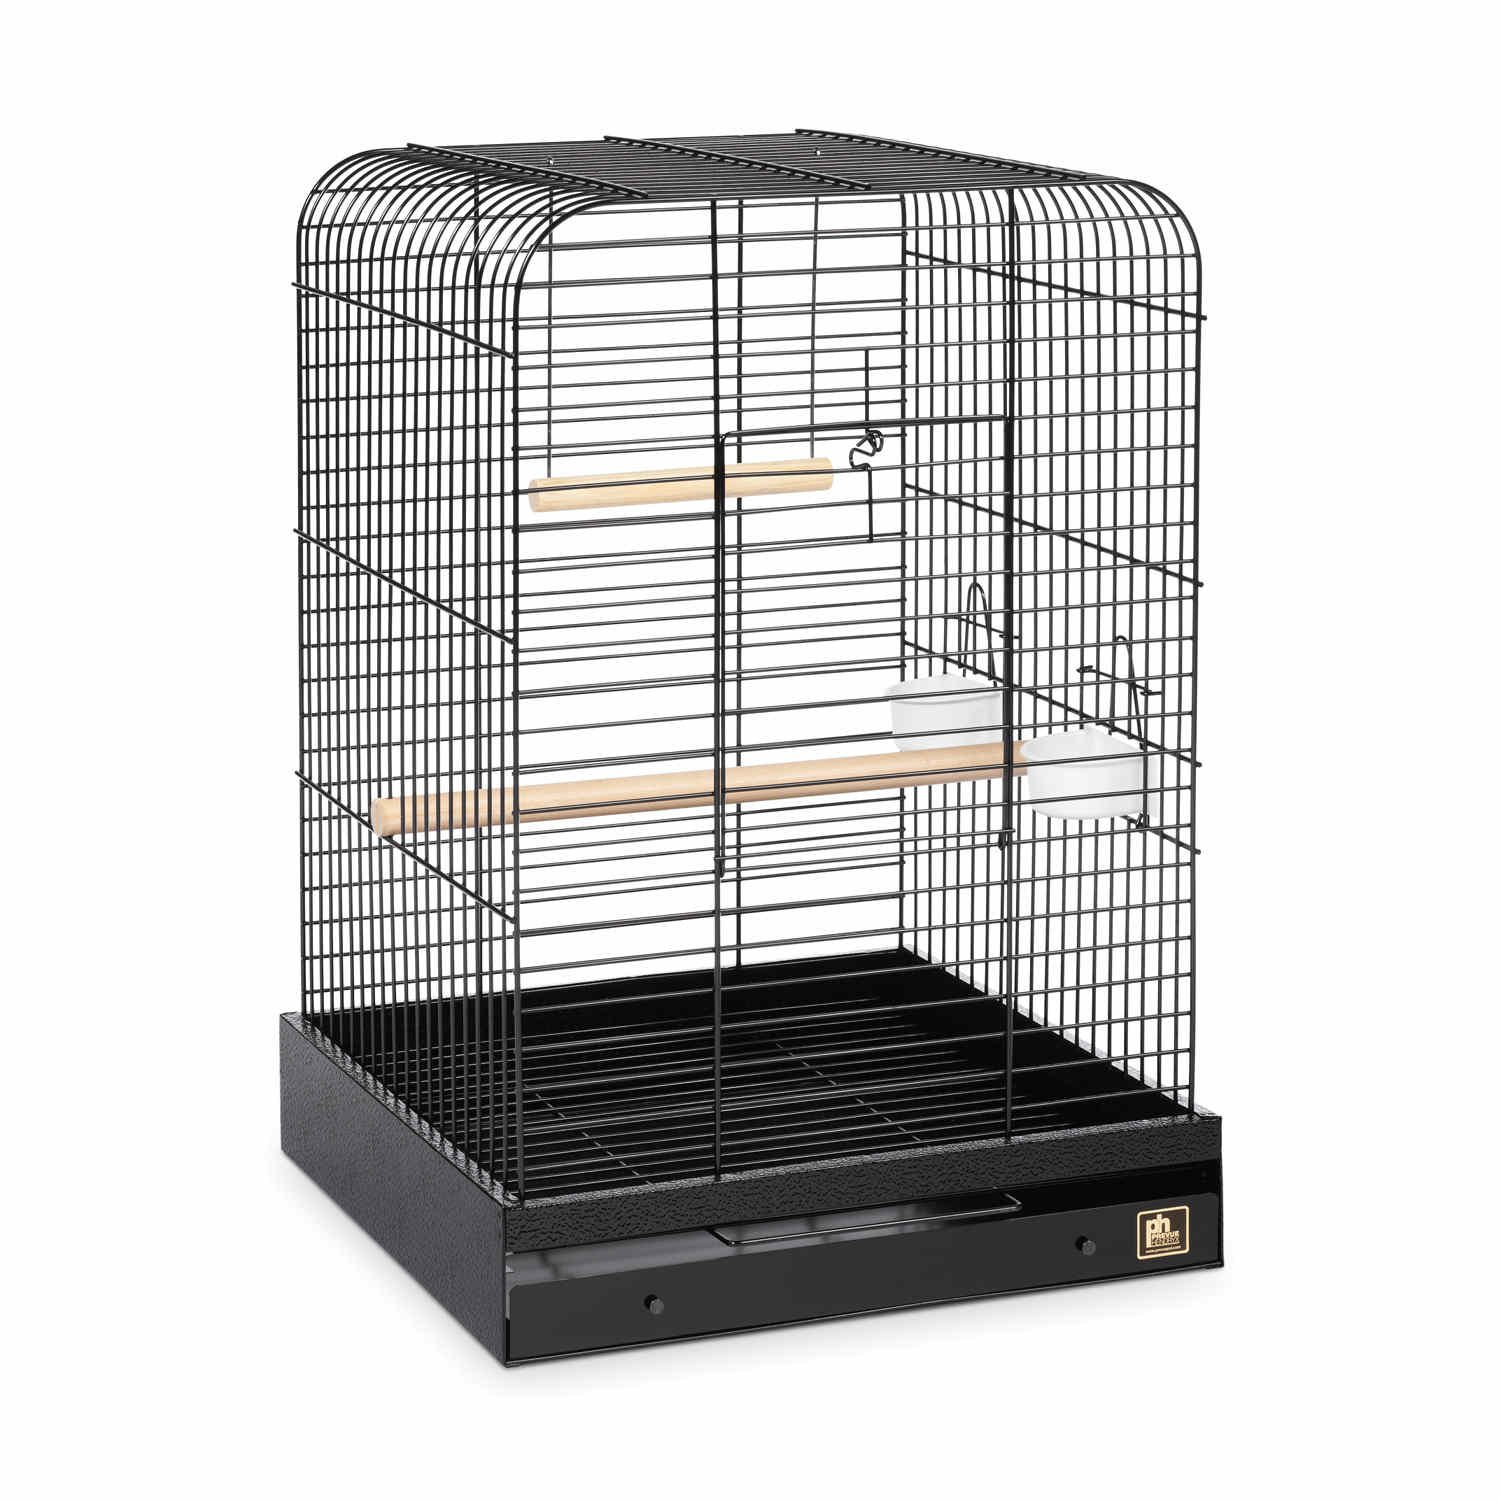 Prevue Hendryx Parrot Cage in Black